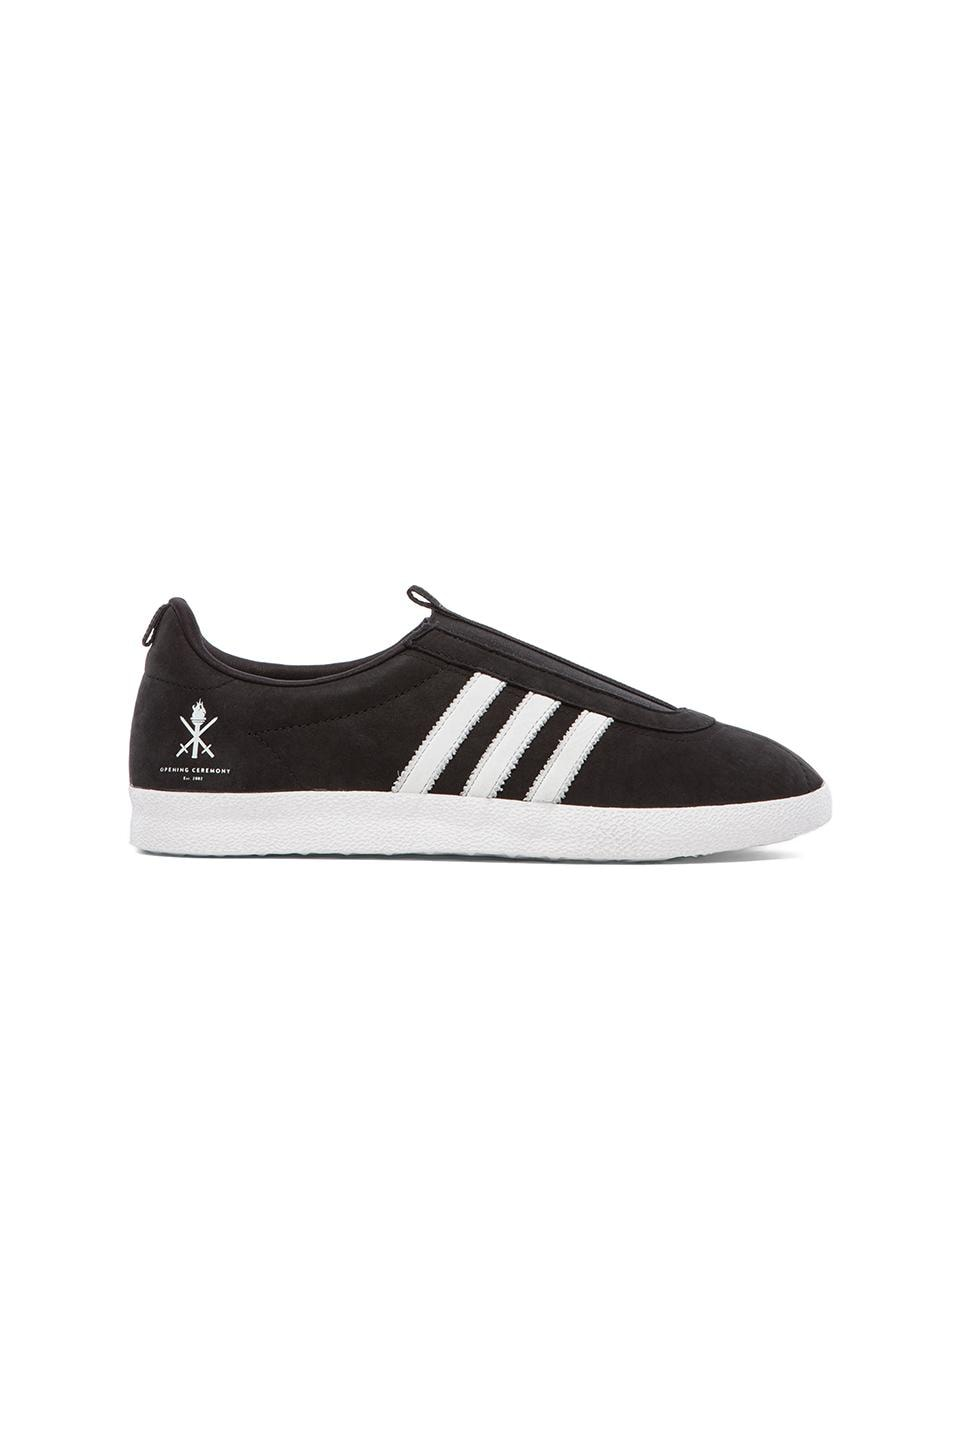 adidas Originals by Opening Ceremony Taekwondo Gazelle in Black